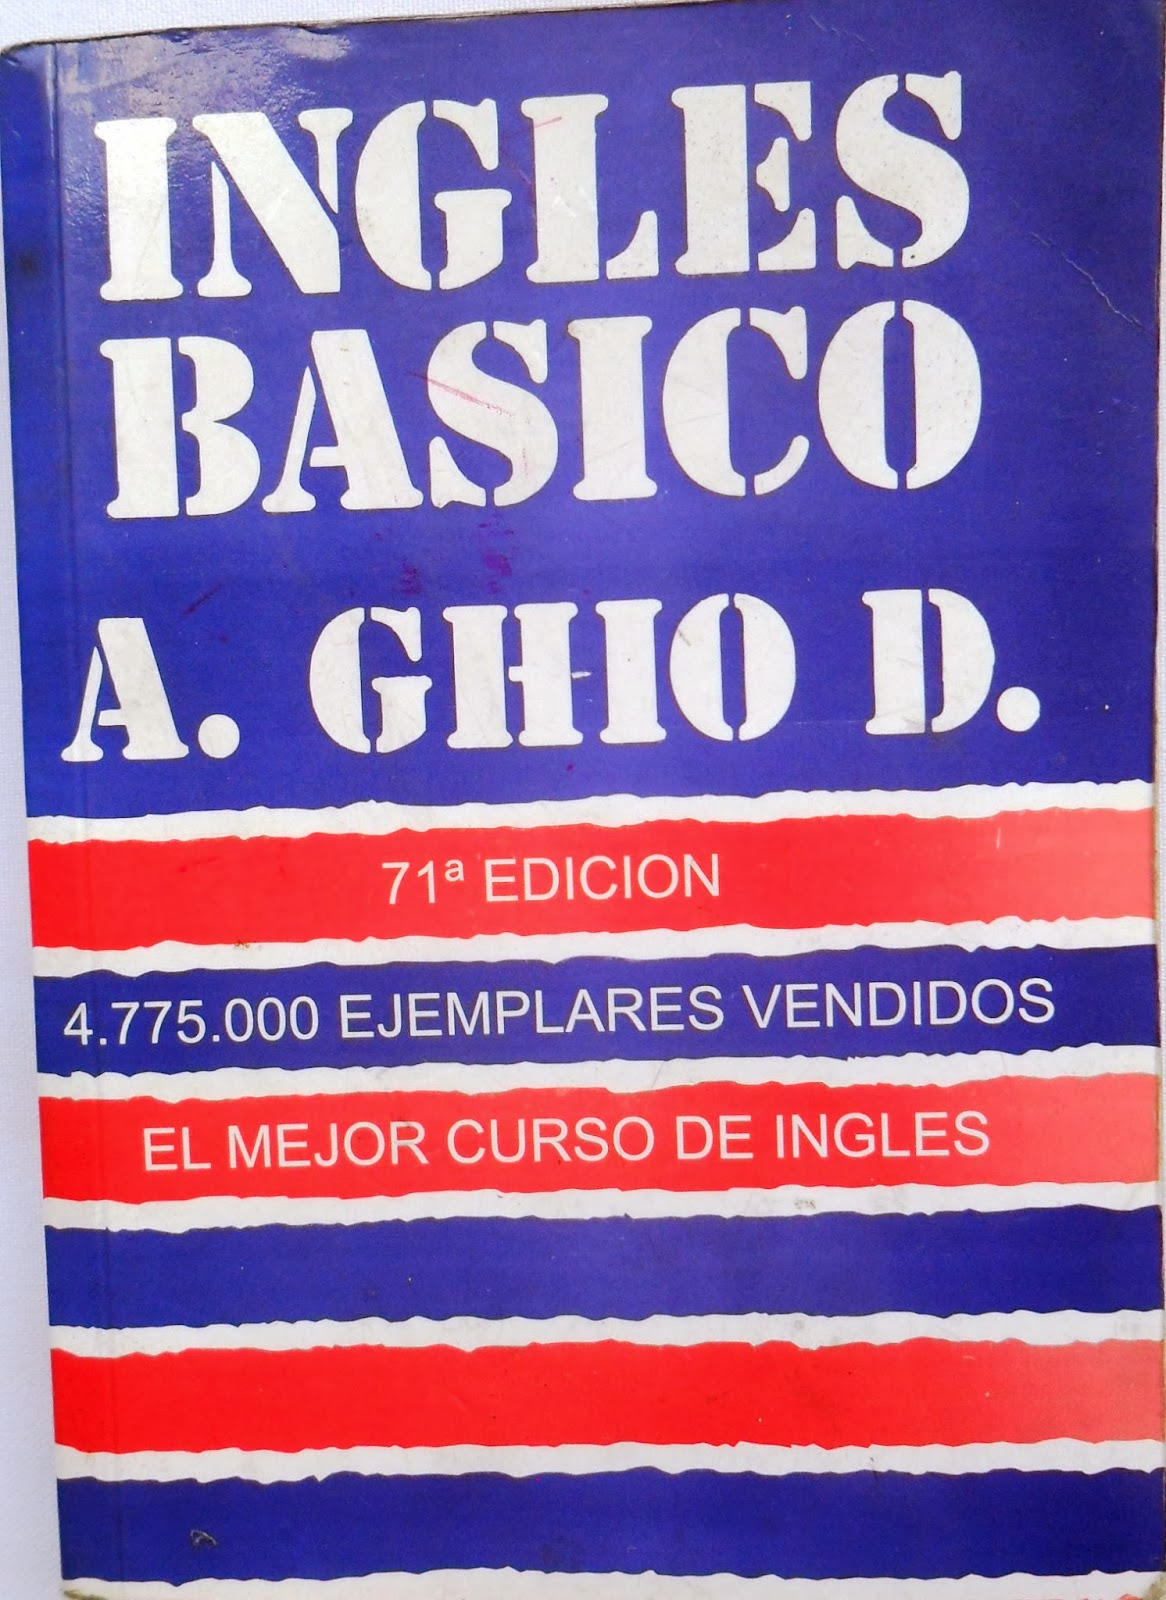 Descargar Libros Gratis En Italiano Download Free Curso Basico De Ingles Gratis Pdf Software